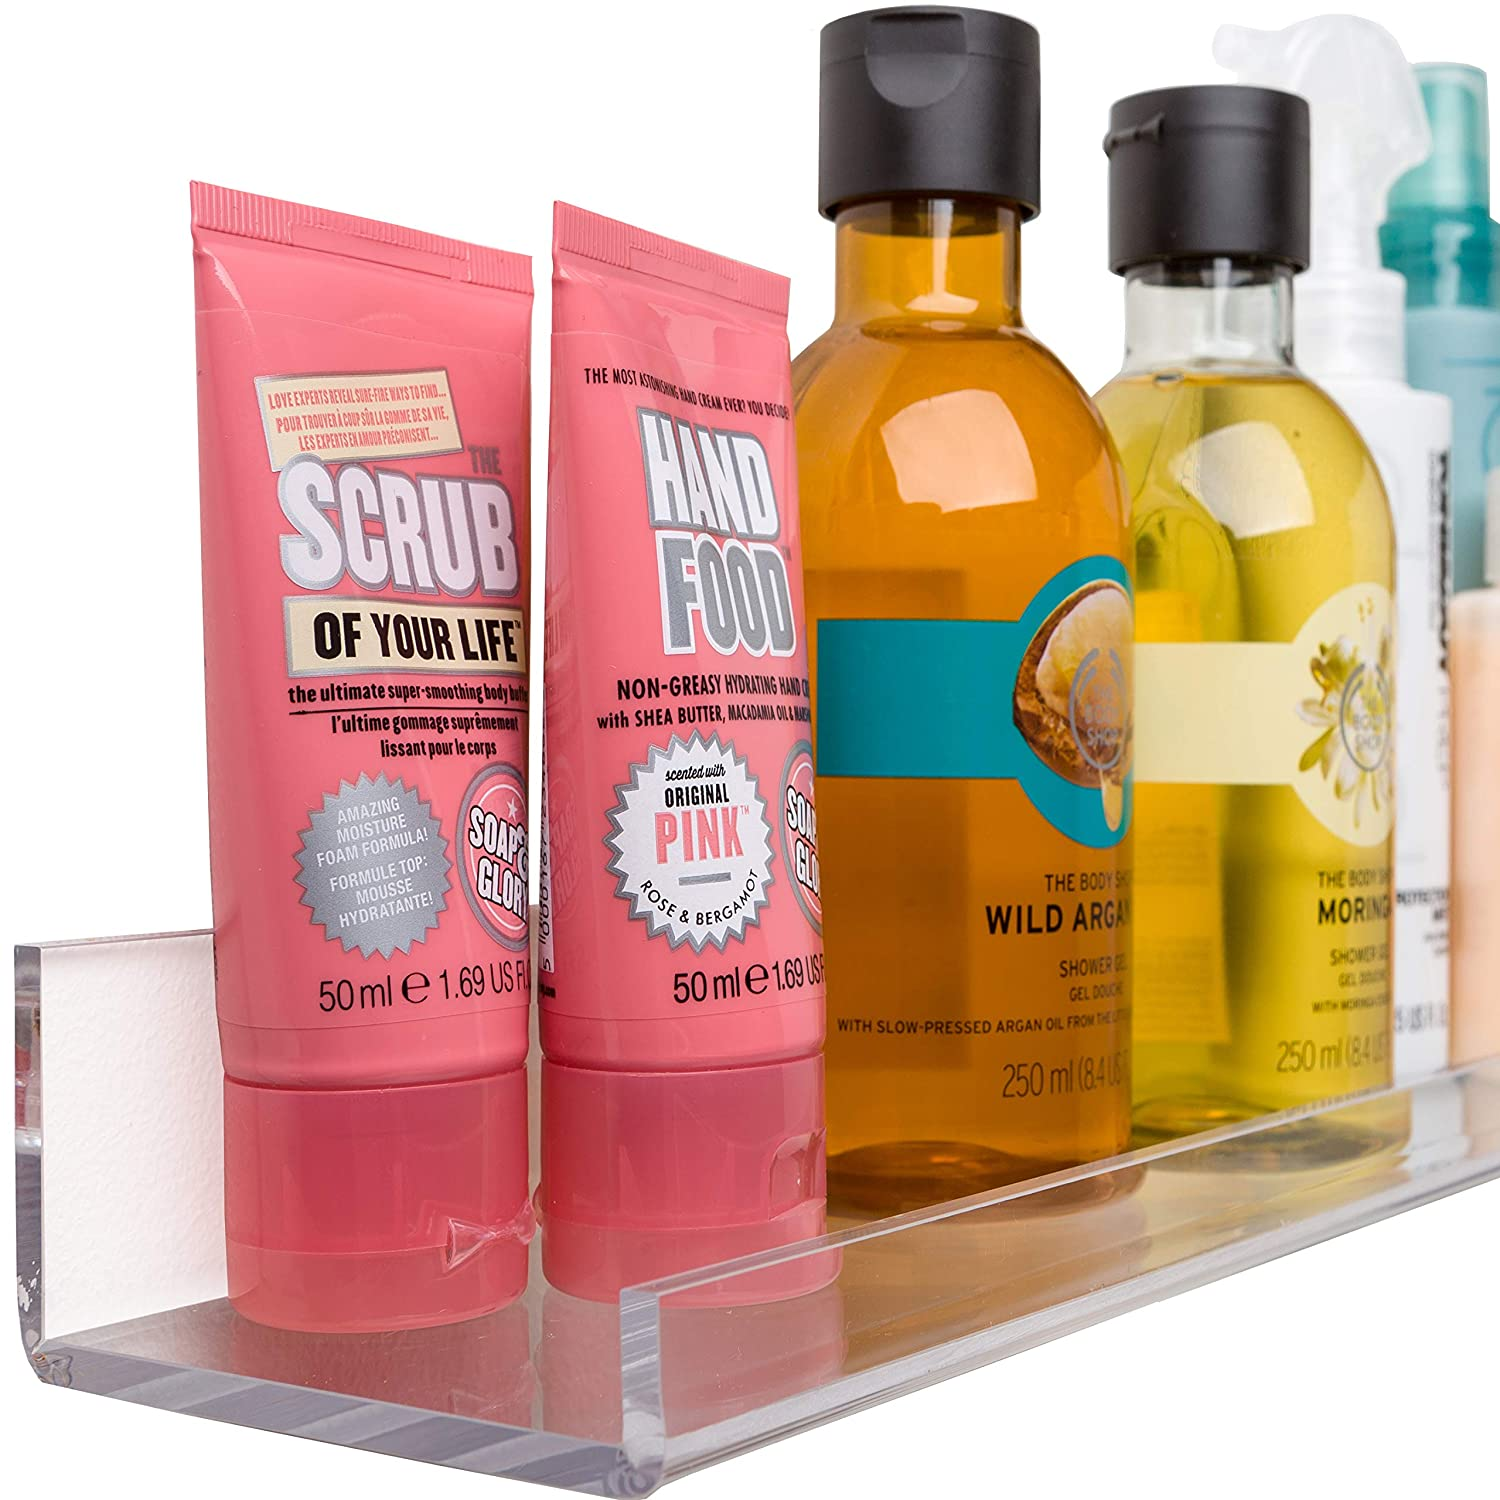 Acrylic Bathroom Shelves [10 inch] - Space Saving: Rustproof & Extra Strong 5mm Thick Floating Small Shelf (Set of 2) by Pretty Display, Size 10 x 3 inch & Includes Fittings - Easy to Wall Mount